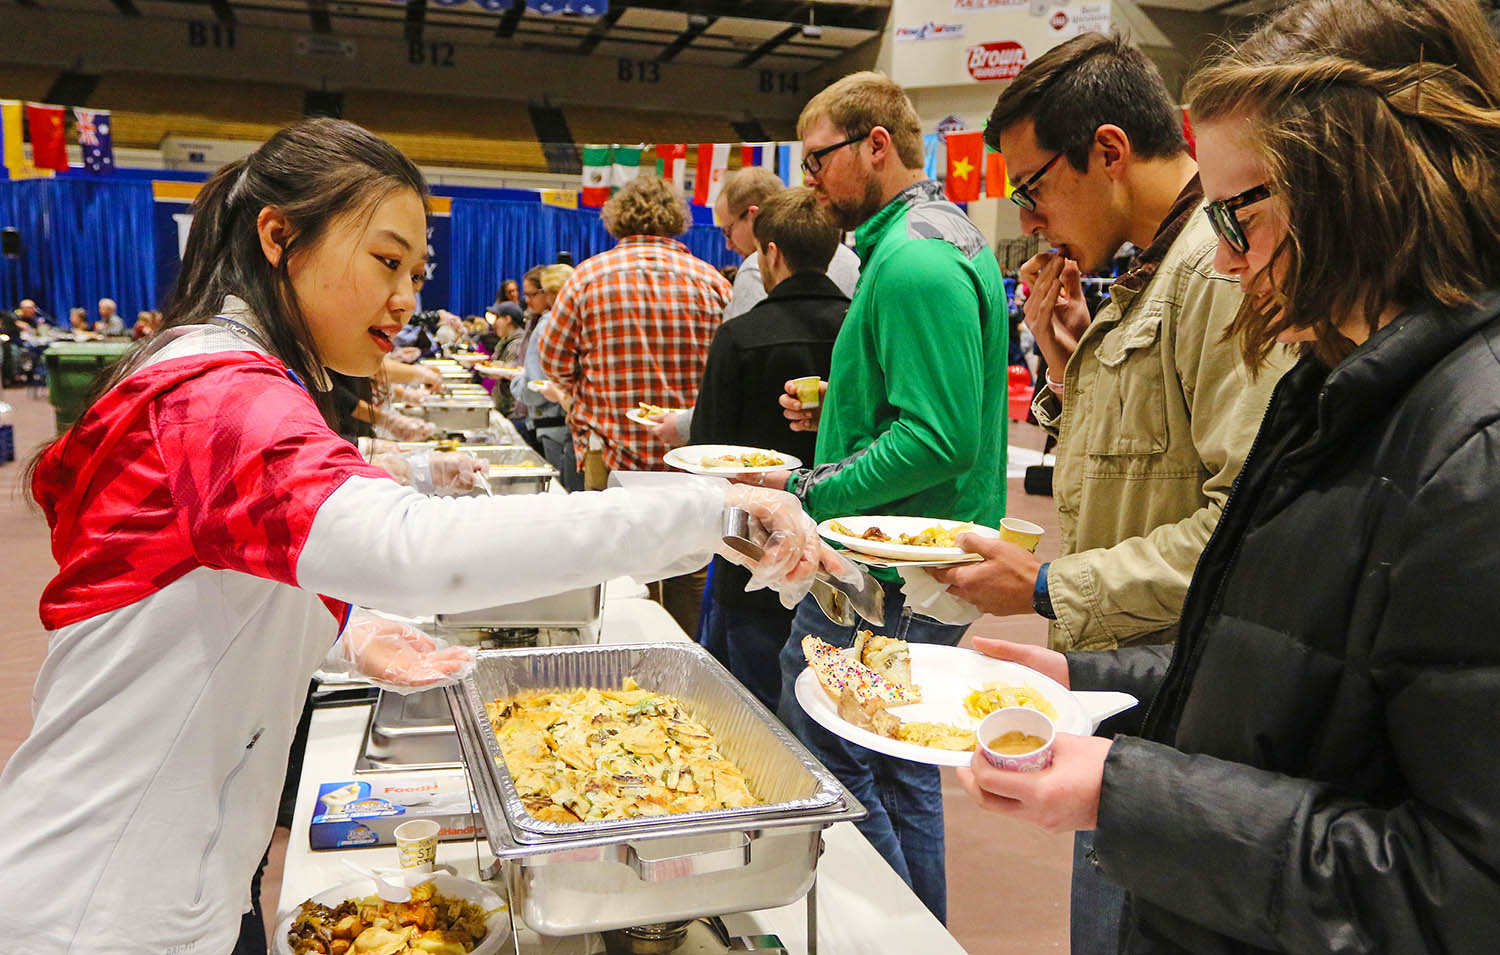 Attendees can sample cuisine from 11 different countries at this year's Scott D. Morris International Food and Cultural Festival, which is scheduled for 4-6 p.m. March 8 at UNK's Health and Sports Center. (Photos by Todd Gottula, UNK Communications)